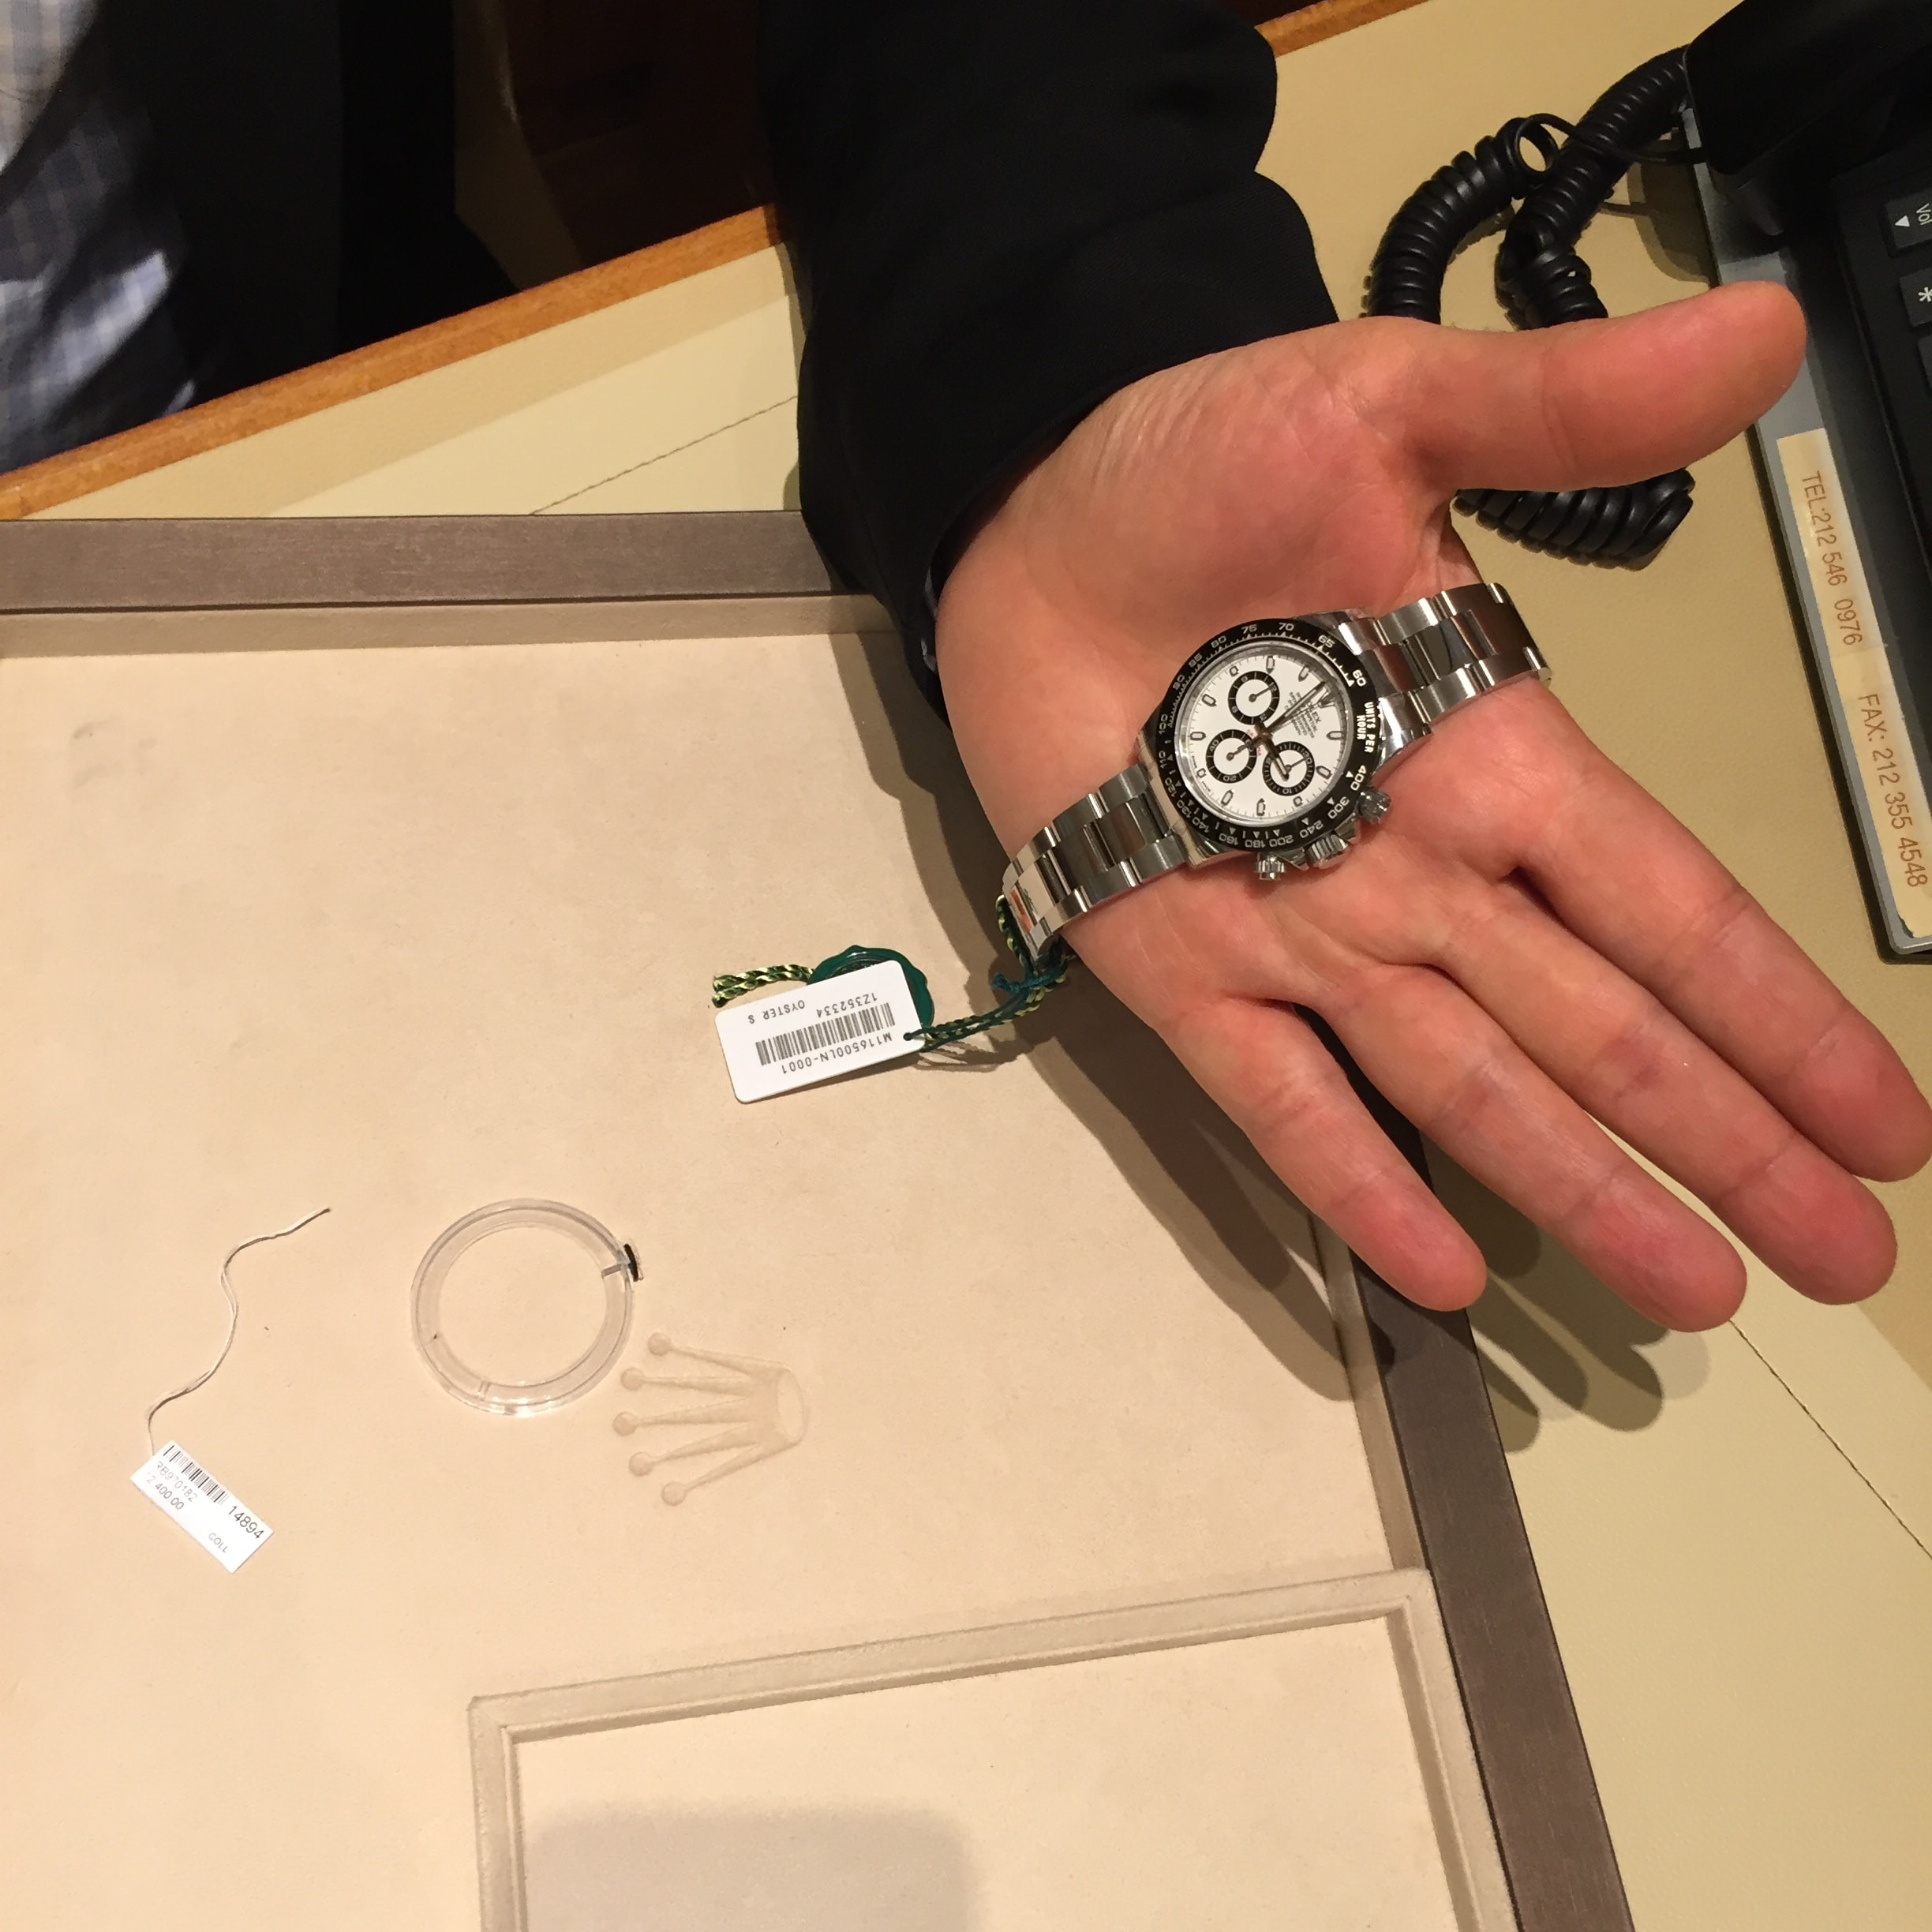 In Conversation: John Mayer And Ben Clymer Discuss The New Rolex Daytona As Early Owners In Conversation: John Mayer And Ben Clymer Discuss The New Rolex Daytona As Early Owners IMG 5426